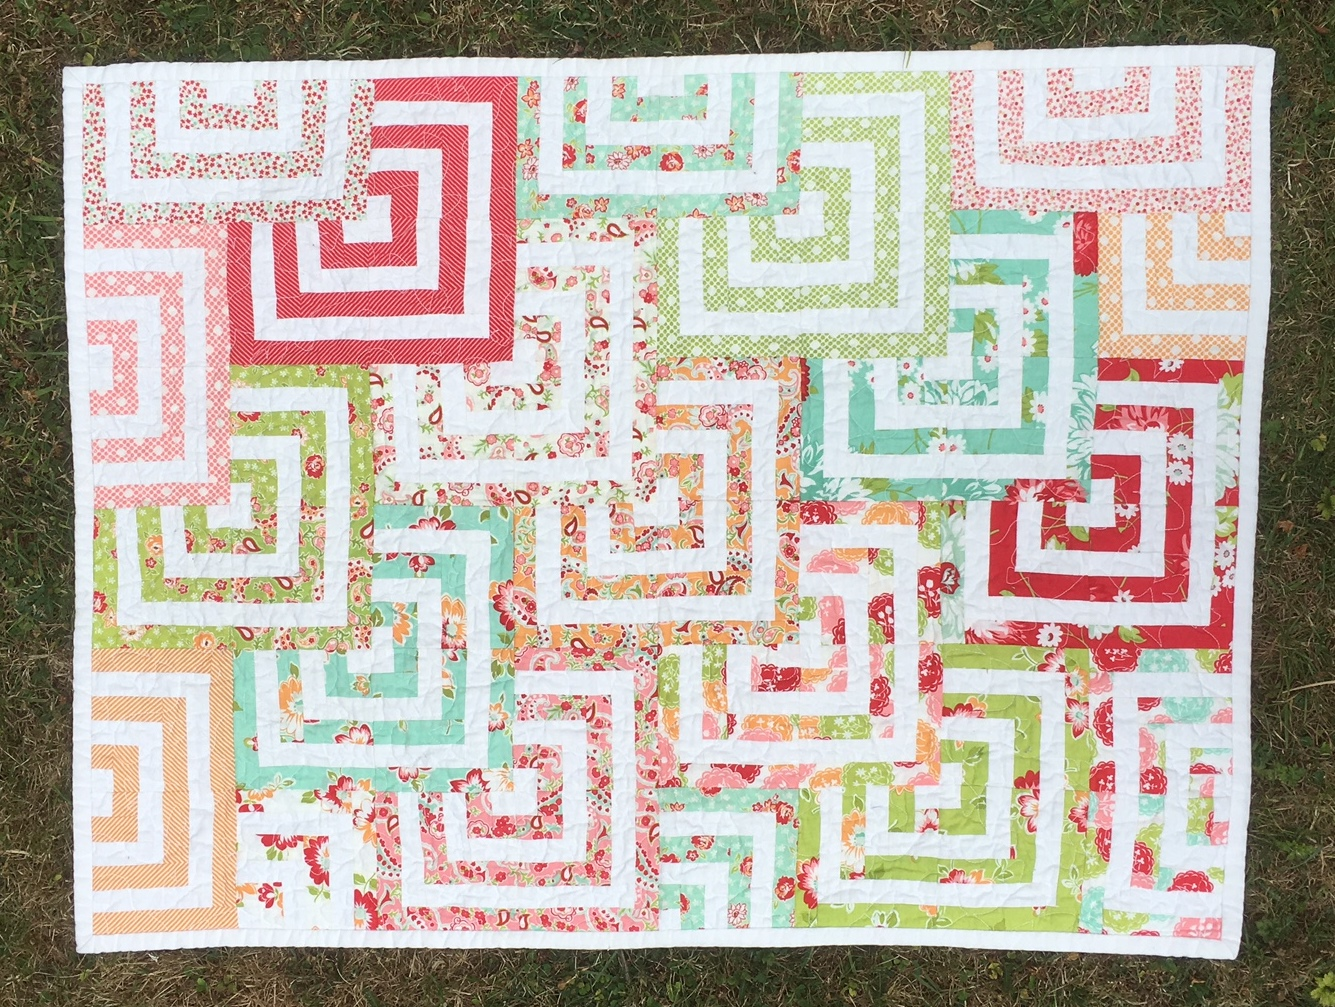 Janet quilt 4 cropped.jpg